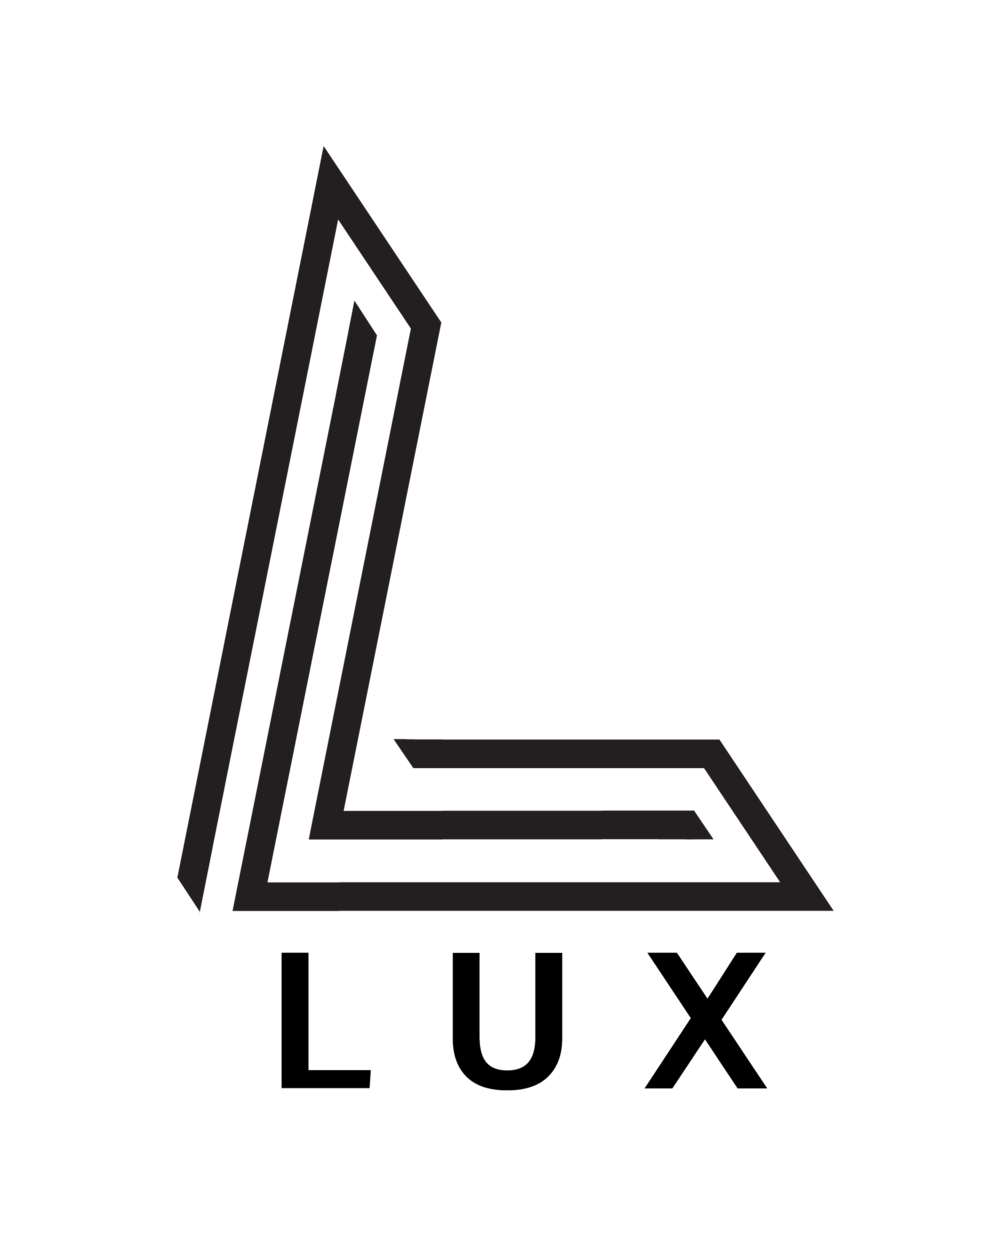 lux-website-logo-11-01.png